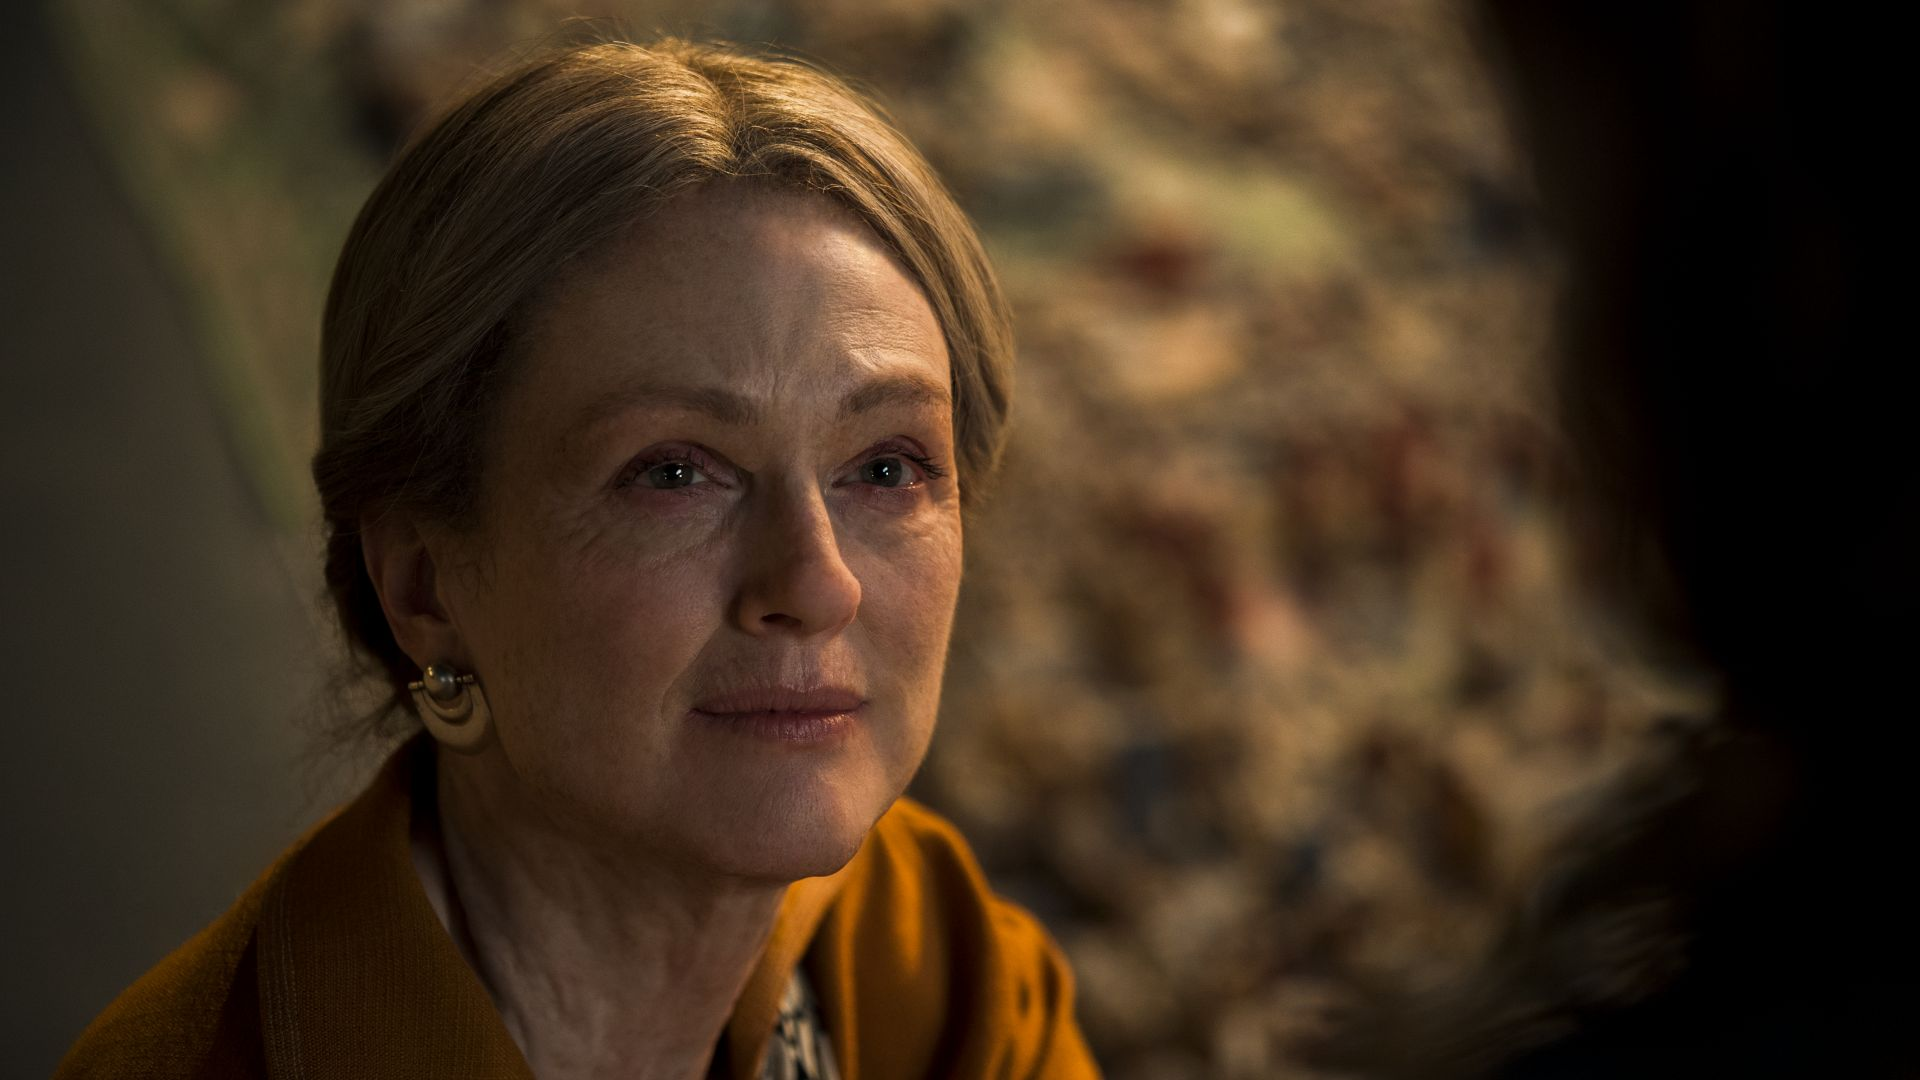 Мир, полный чудес, Джулианна Мур, Канны 2017, Wonderstruck, Julianne Moore, Cannes 2017